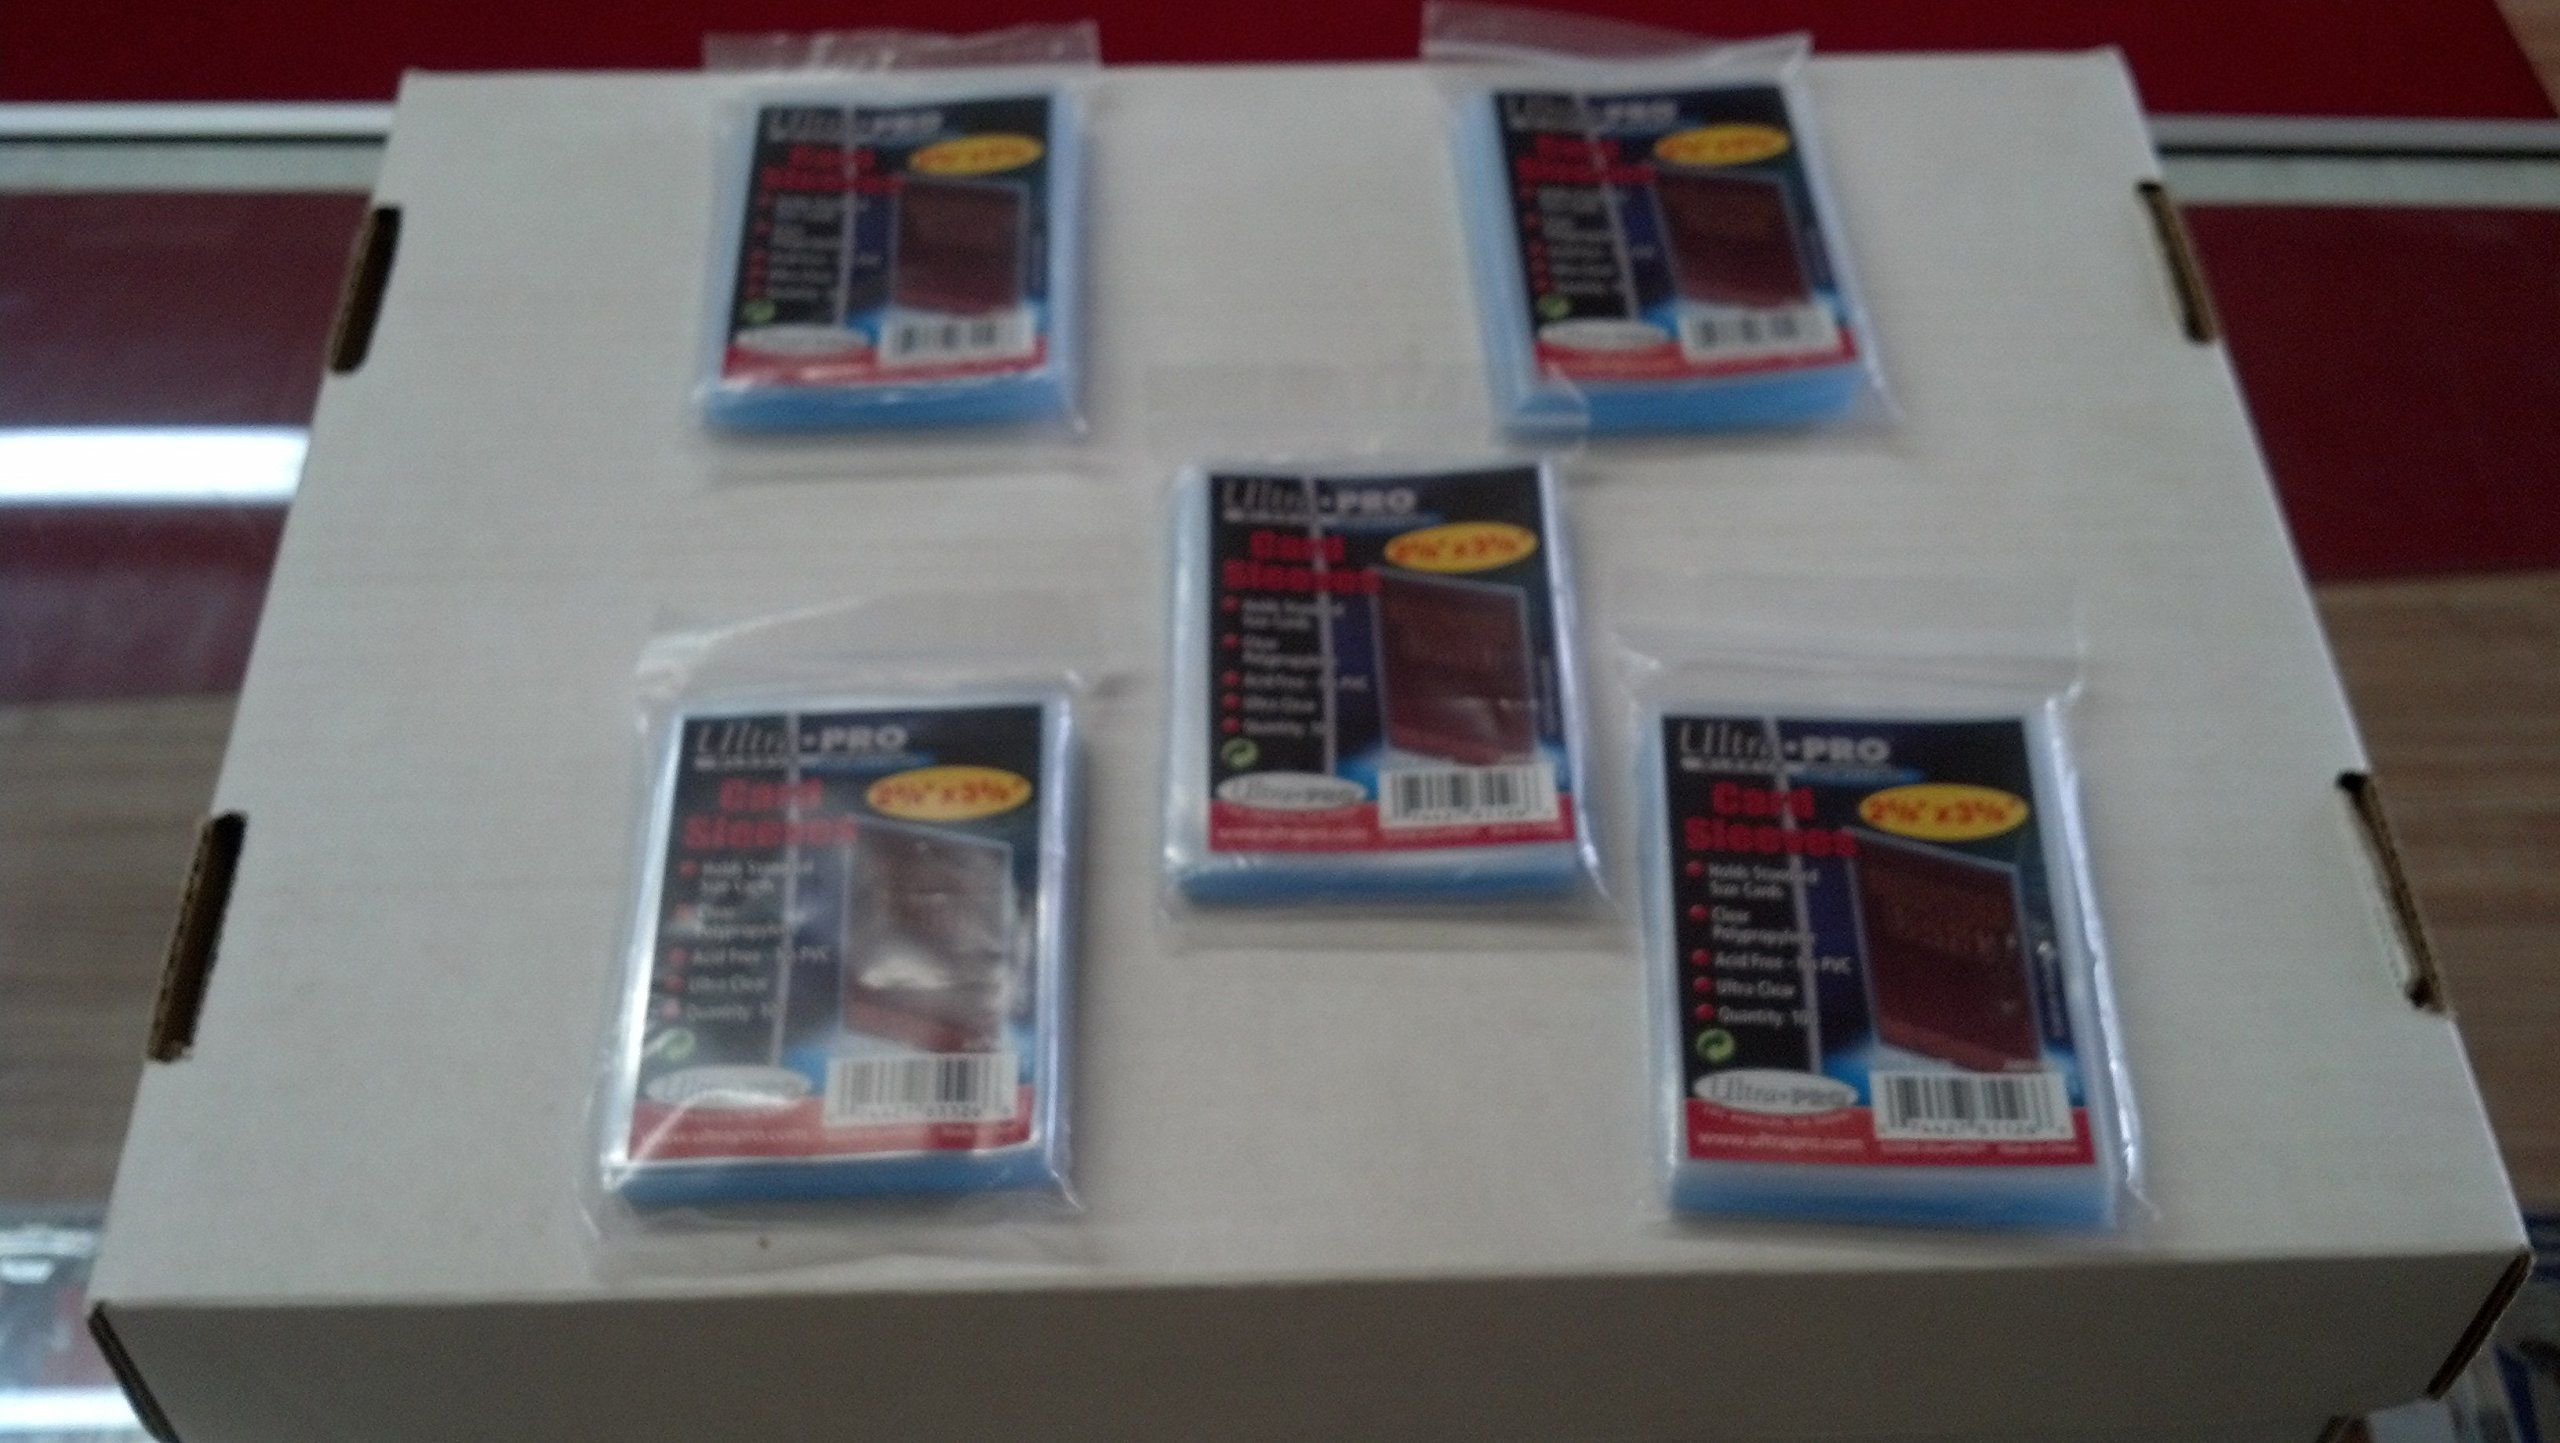 $5.81 500 Ultra Pro Soft Card Sleeves/Penny Sleeves (5 Sealed Packs) - Standard Size 2 5/8 x 3 5/8, NO PVC